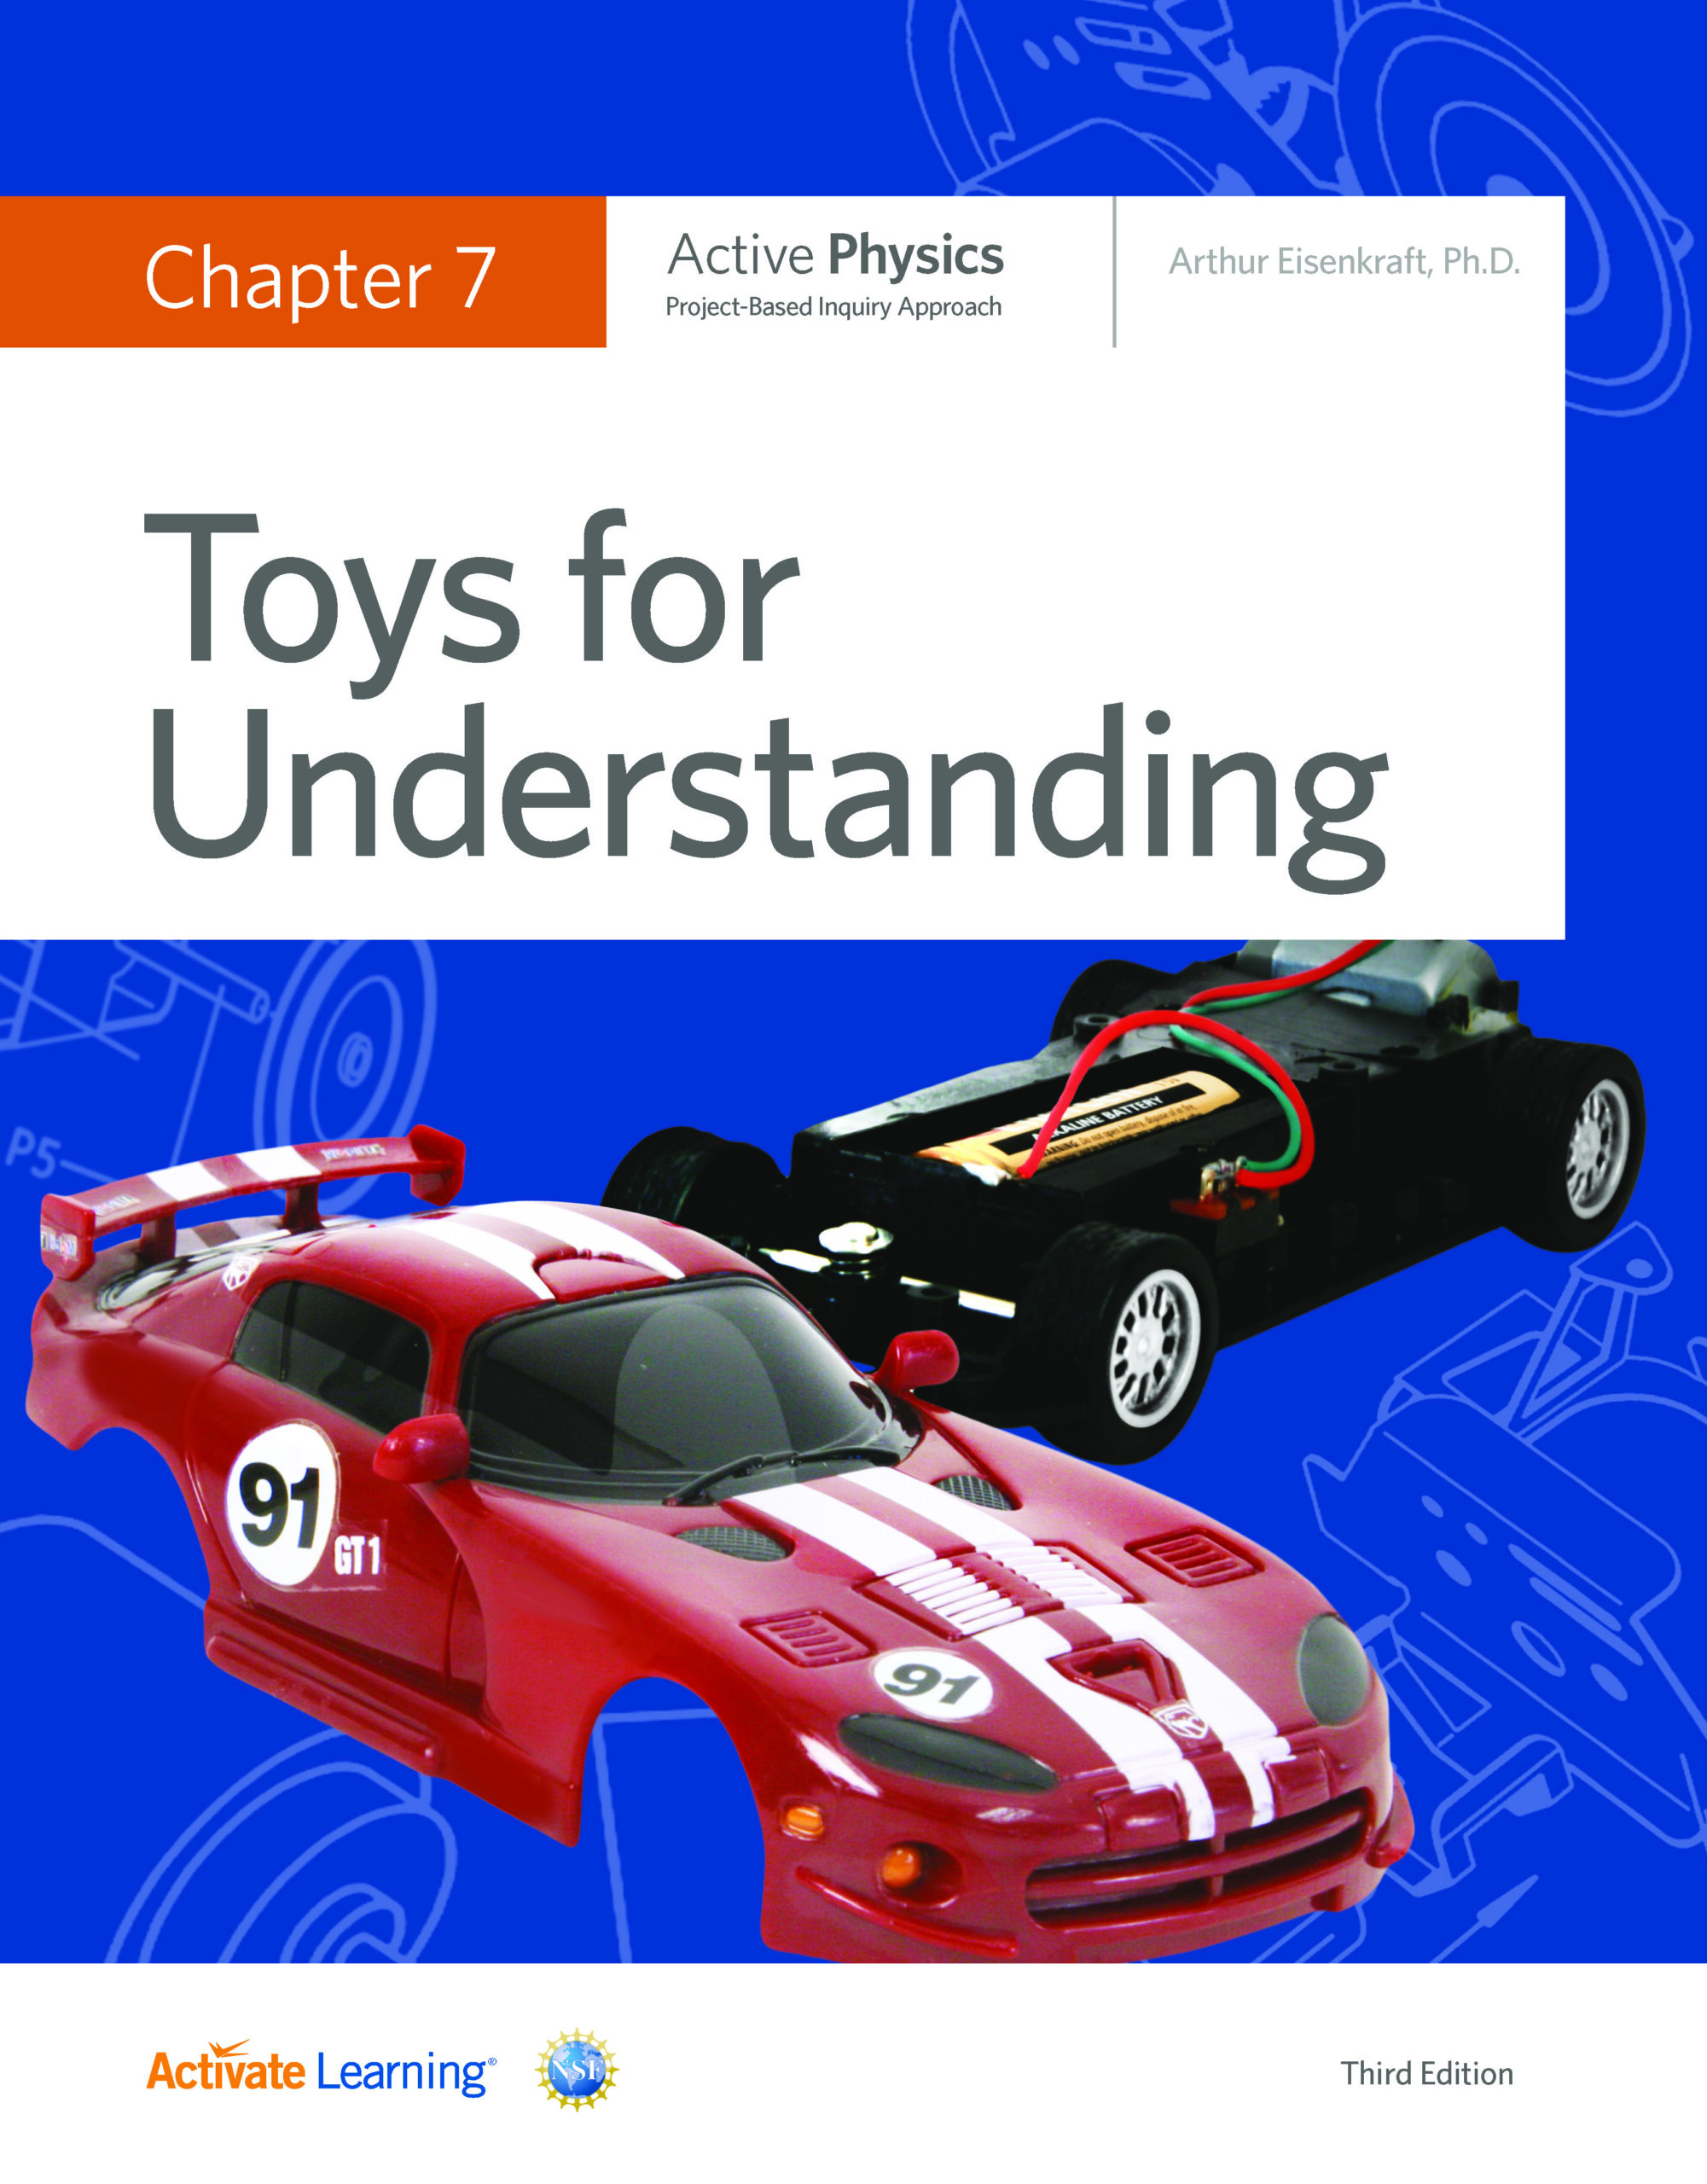 AP_7_Toys_cover_9781682315033